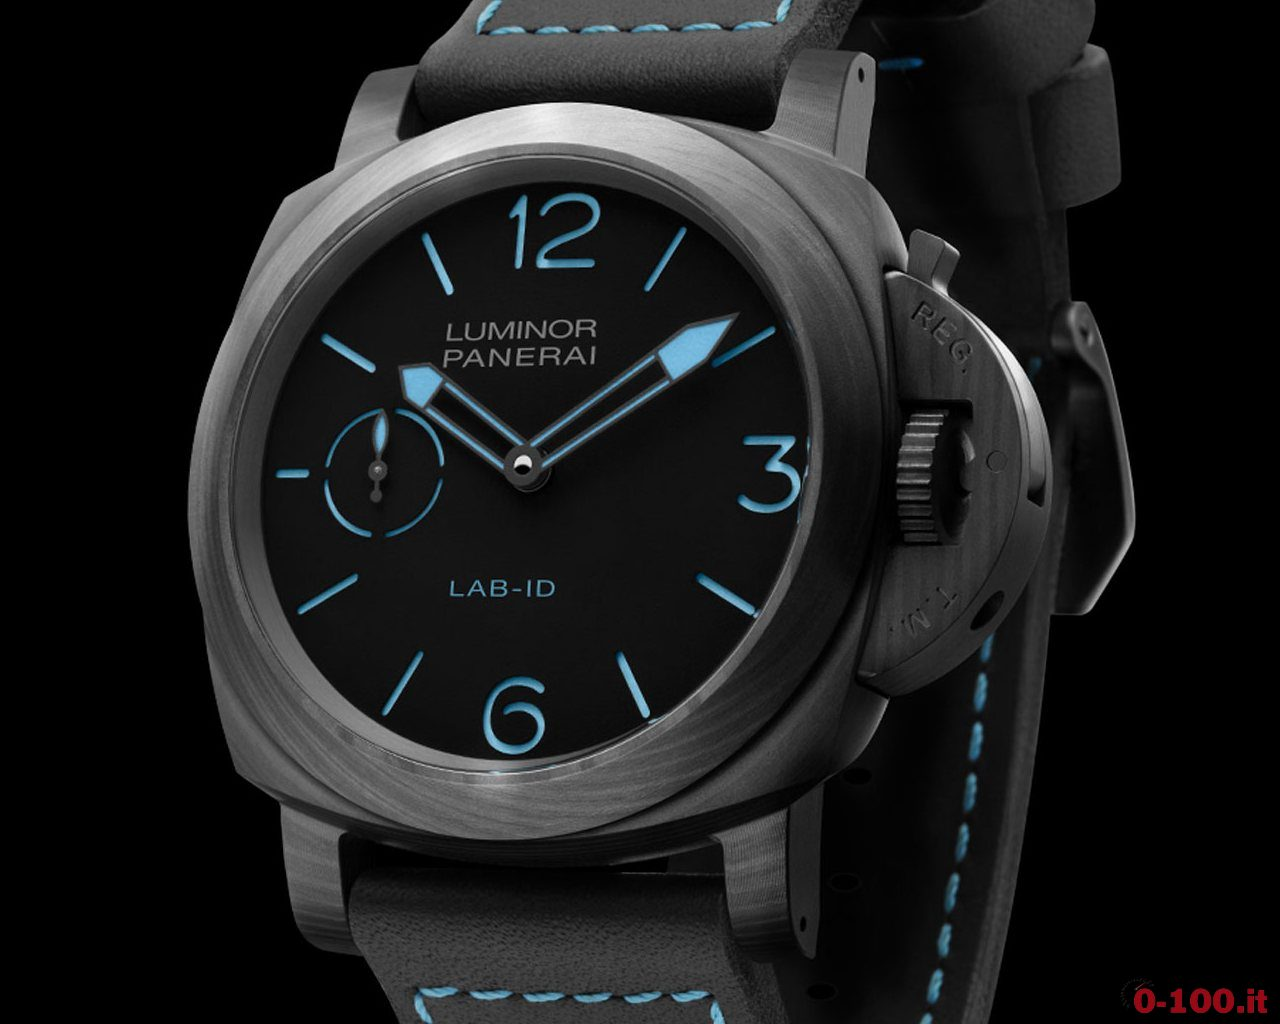 sihh-2017-officine-panerai-panerai-lab-id-luminor-1950-carbotech-3-days-49mm-pam00700-prezzo-price_0-100